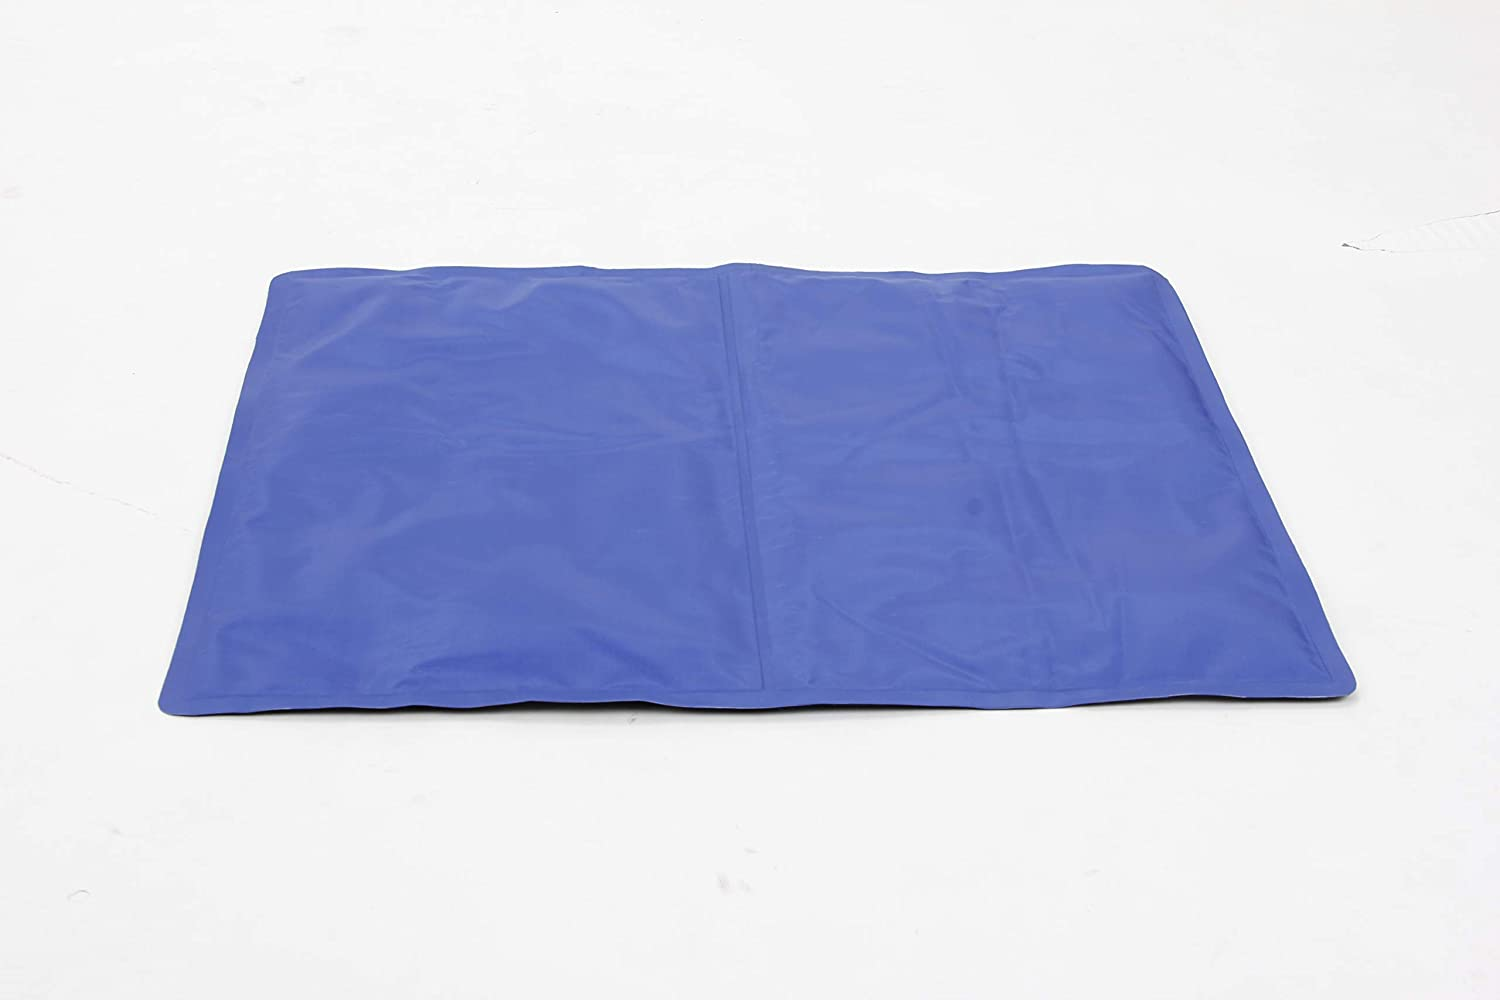 TOPETOFNOTCH Super beauty product OFFicial mail order restock quality top Bed for Dogs Clearance Cooling Mat Automat